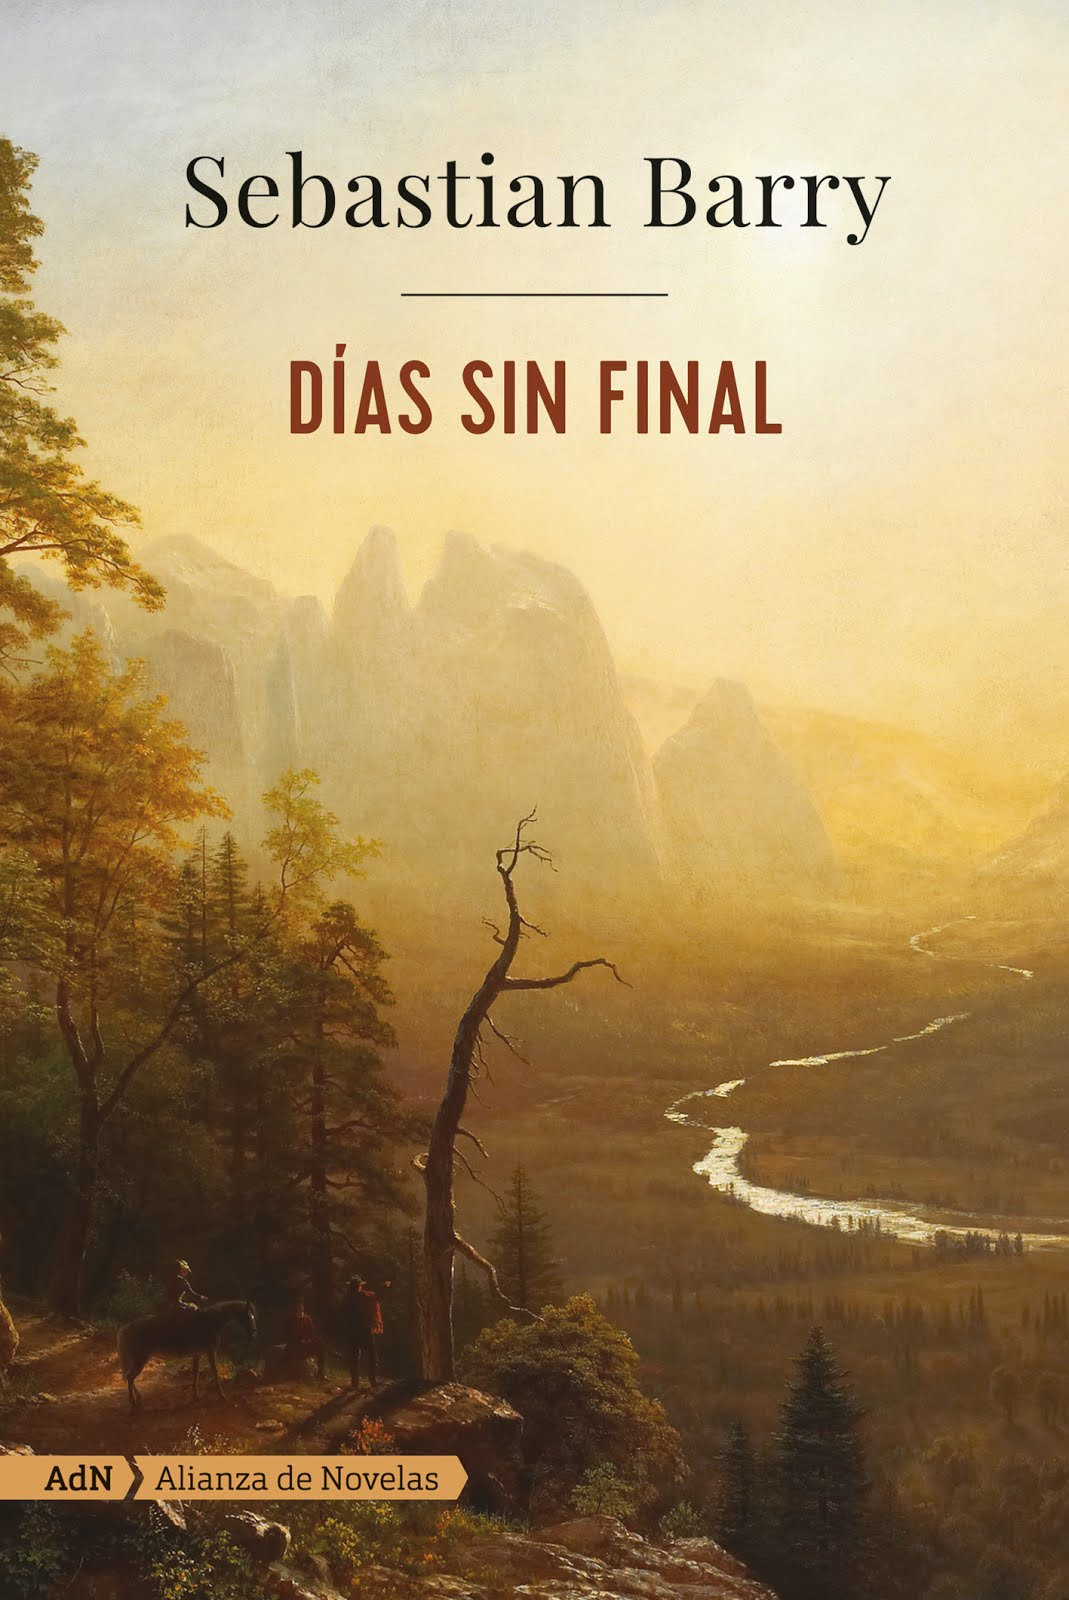 DÍAS SIN FINAL. Sebastian Barry